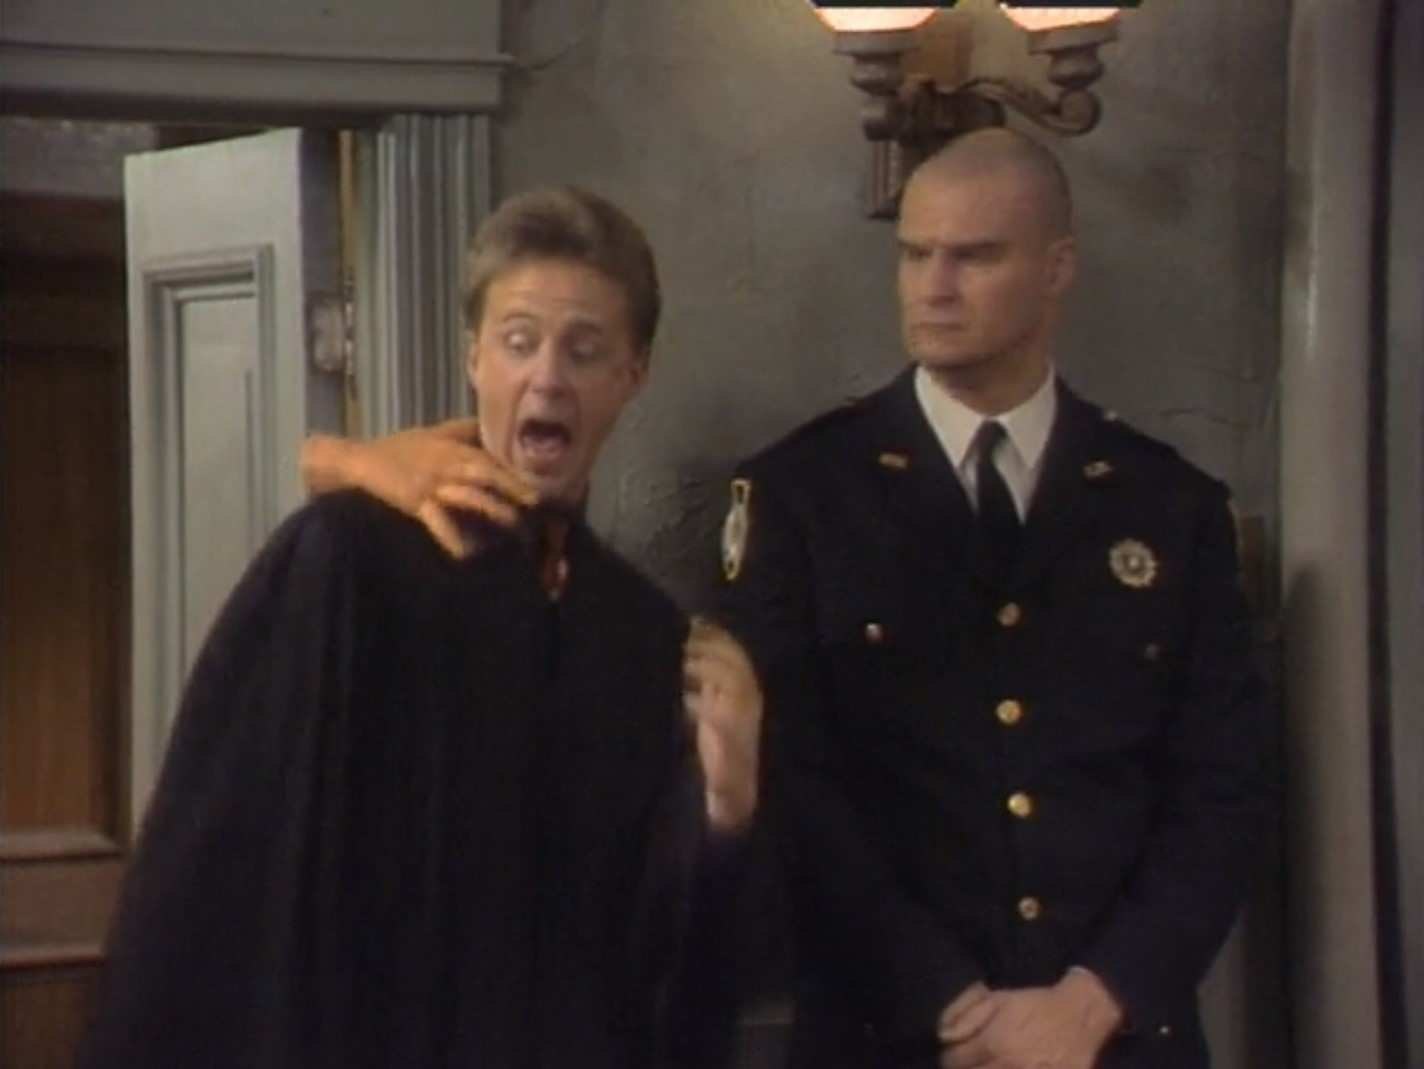 nch10 20 Things You Probably Didn't Know About Night Court